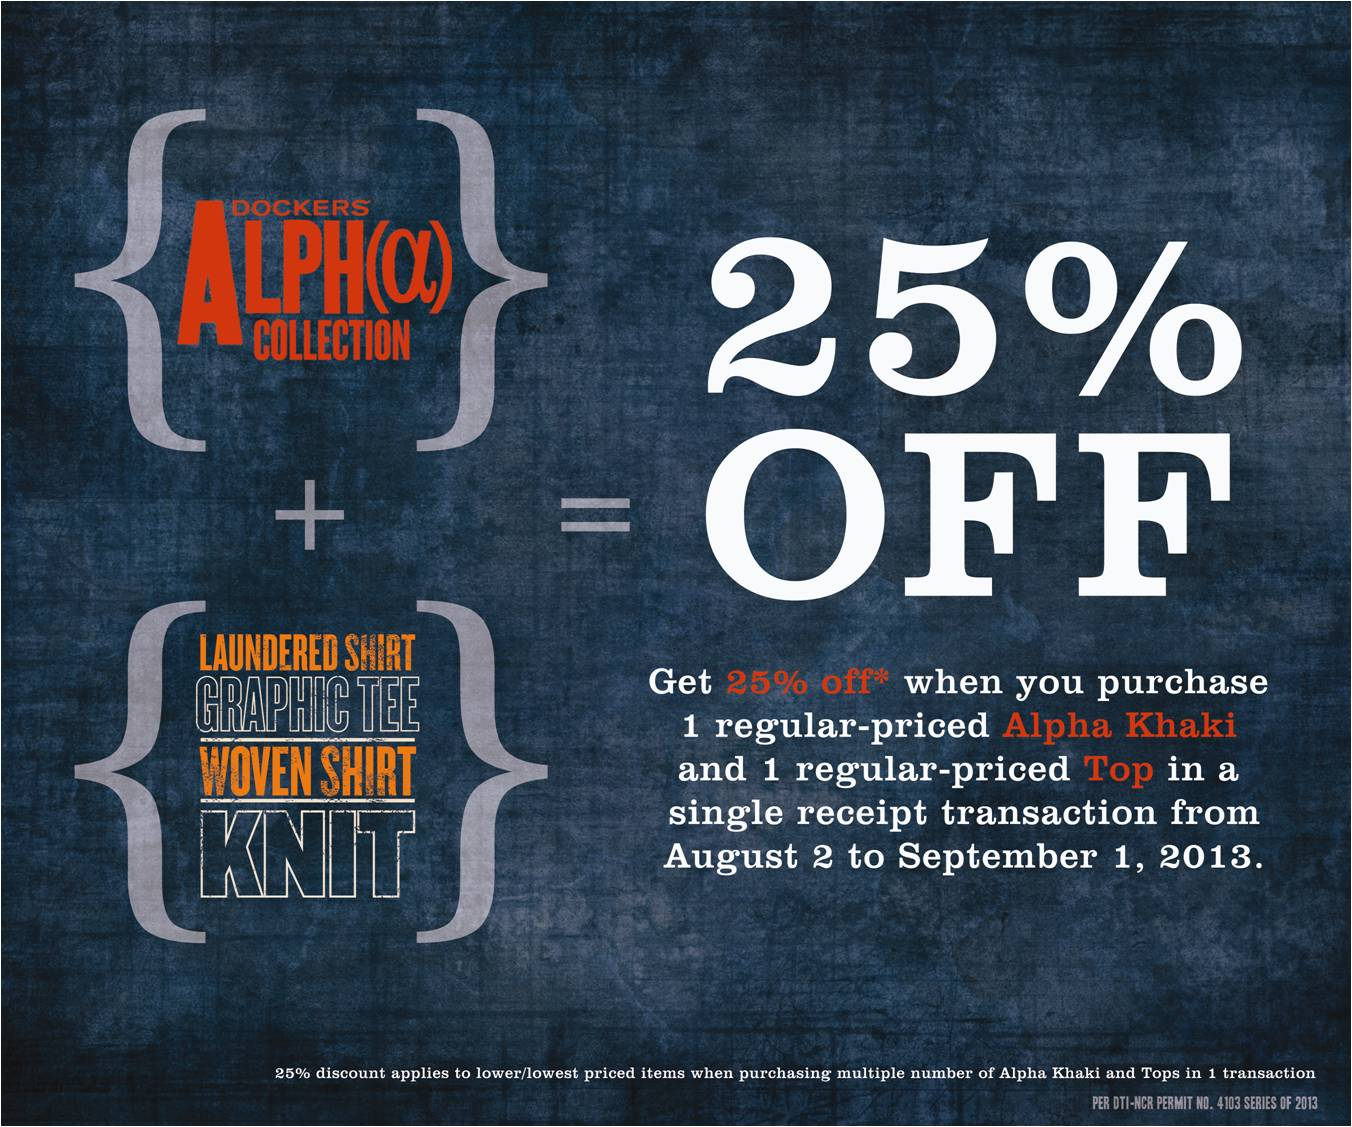 Dockers Alpha Khaki Promo August - September 2013